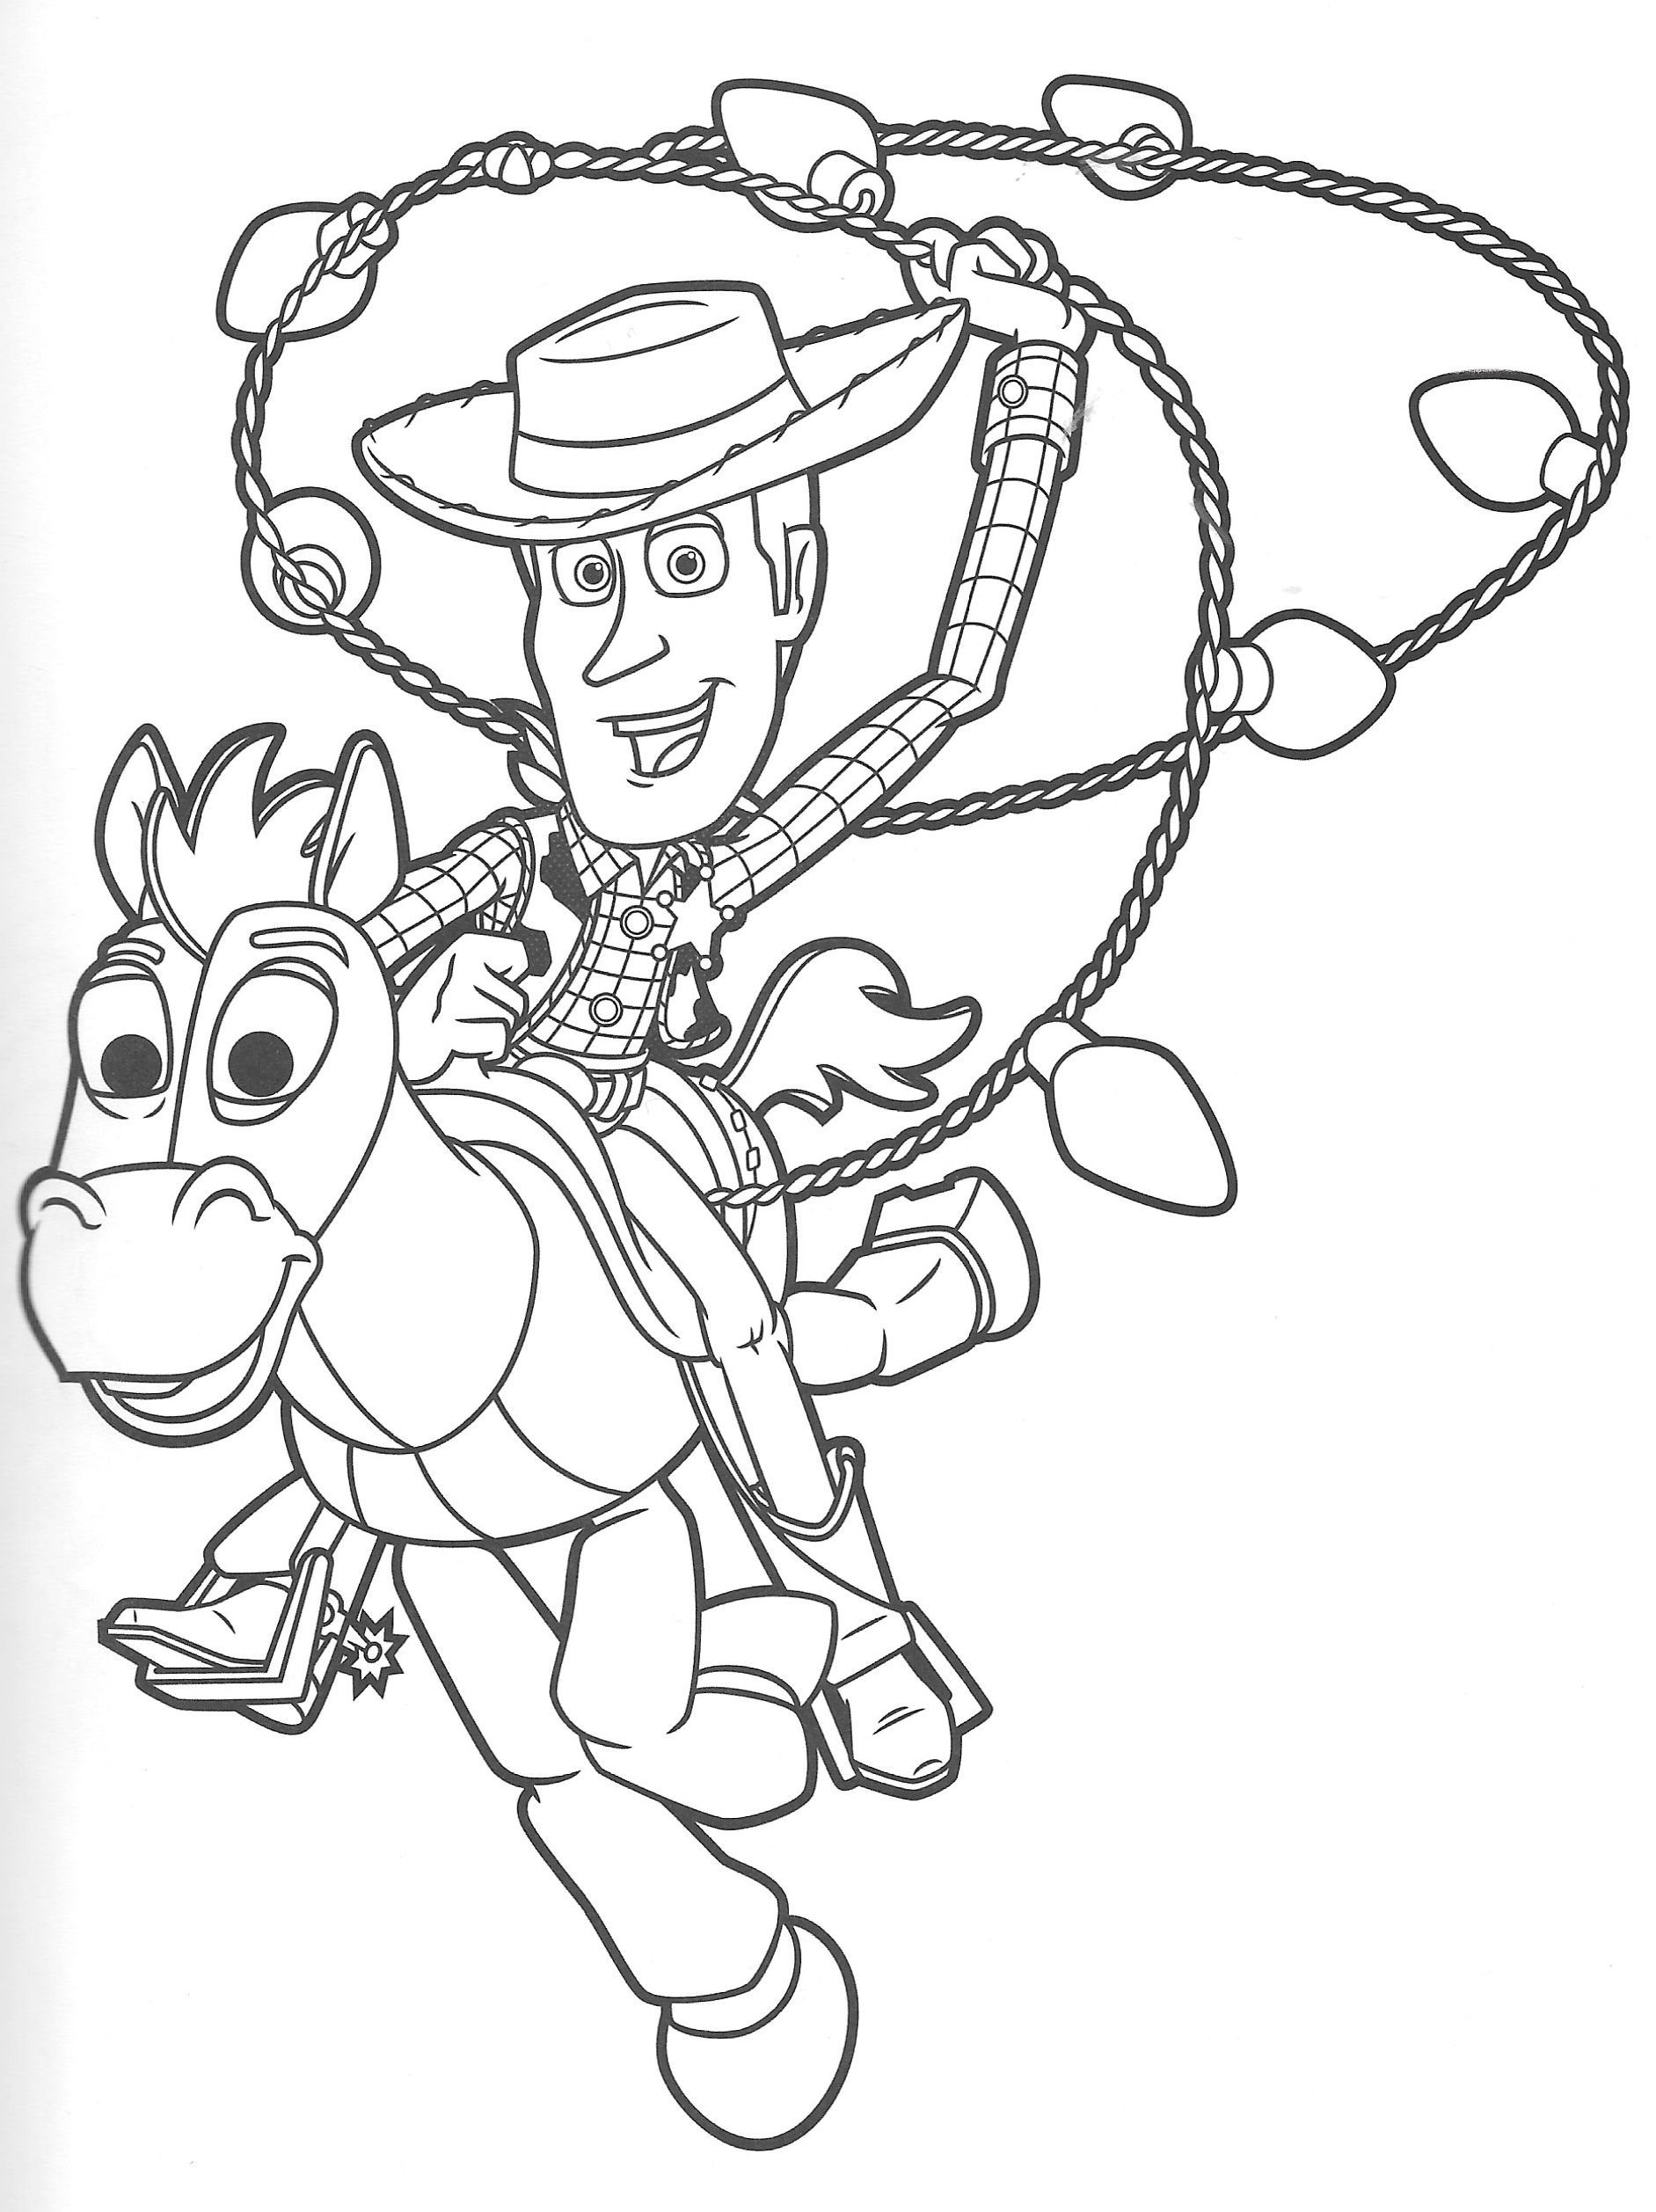 Pin By Monica Patricia Marin Rodrigue On Toy Story Party Toy Story Coloring Pages Disney Coloring Pages Cartoon Coloring Pages